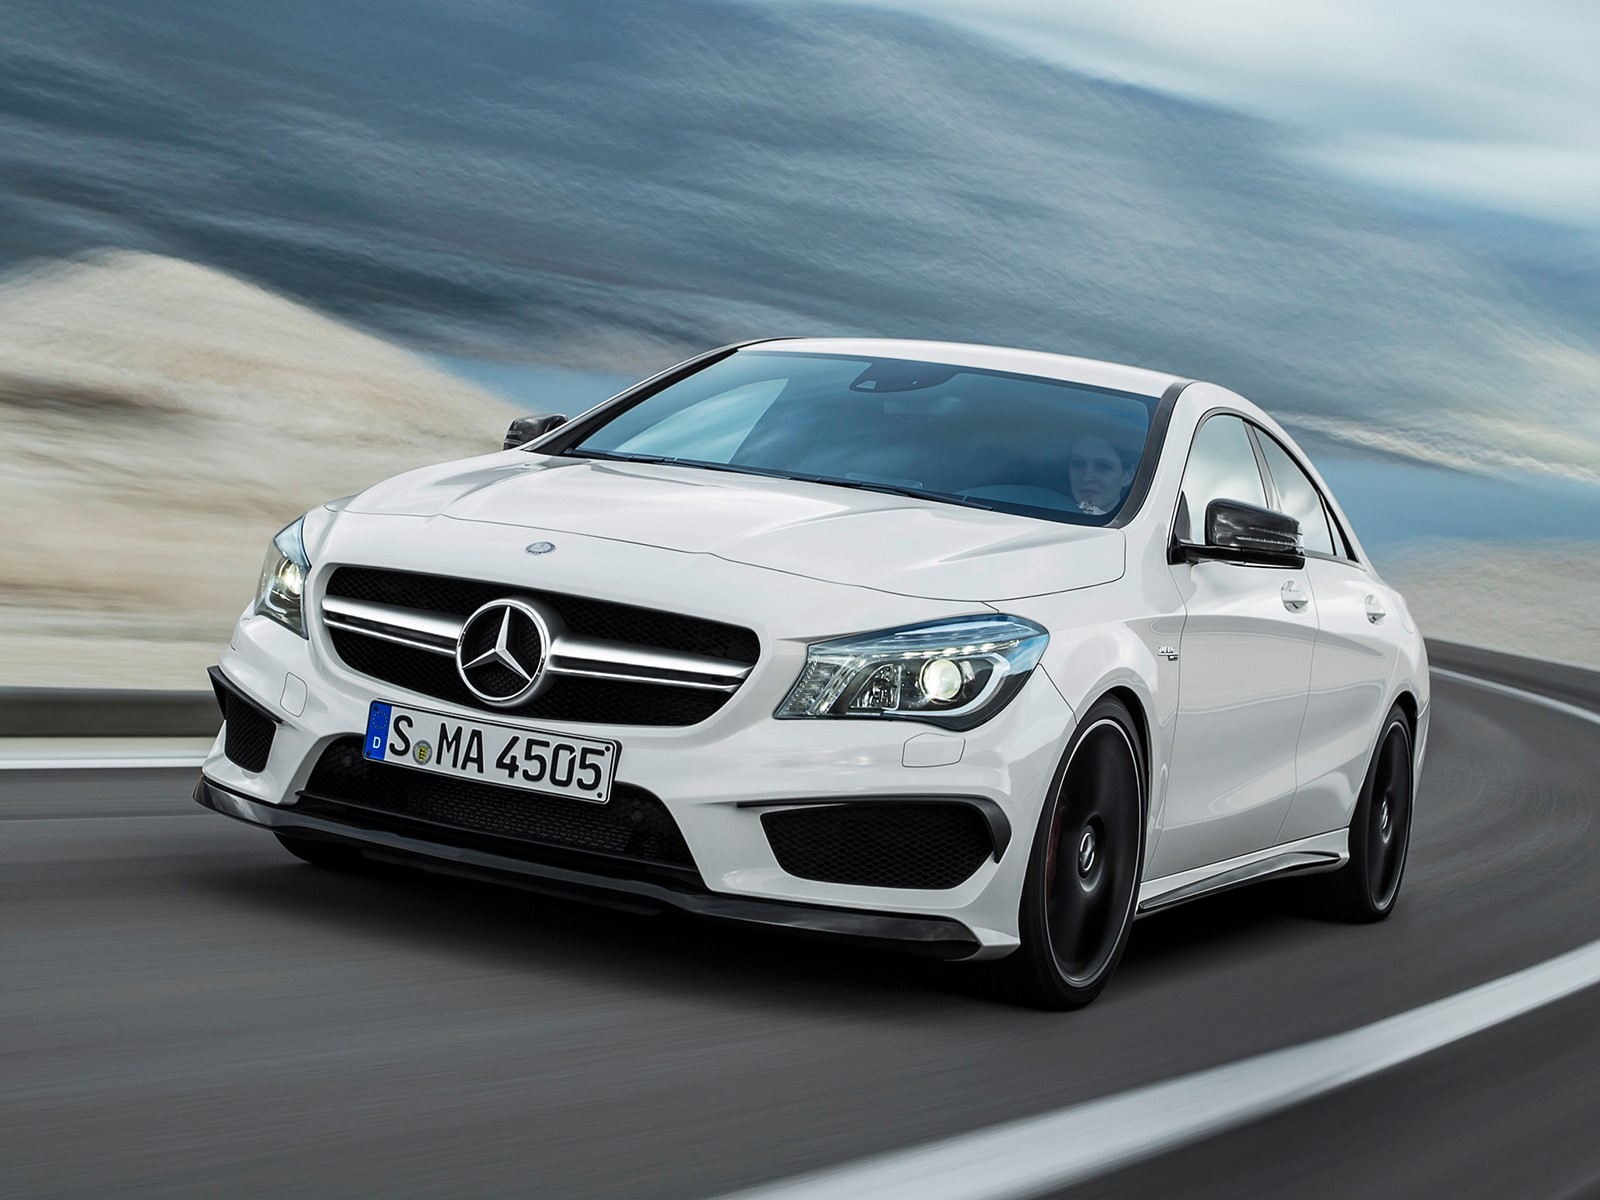 5efd754d84f2 2014 Mercedes-Benz CLA45 AMG Leaked  Gallery